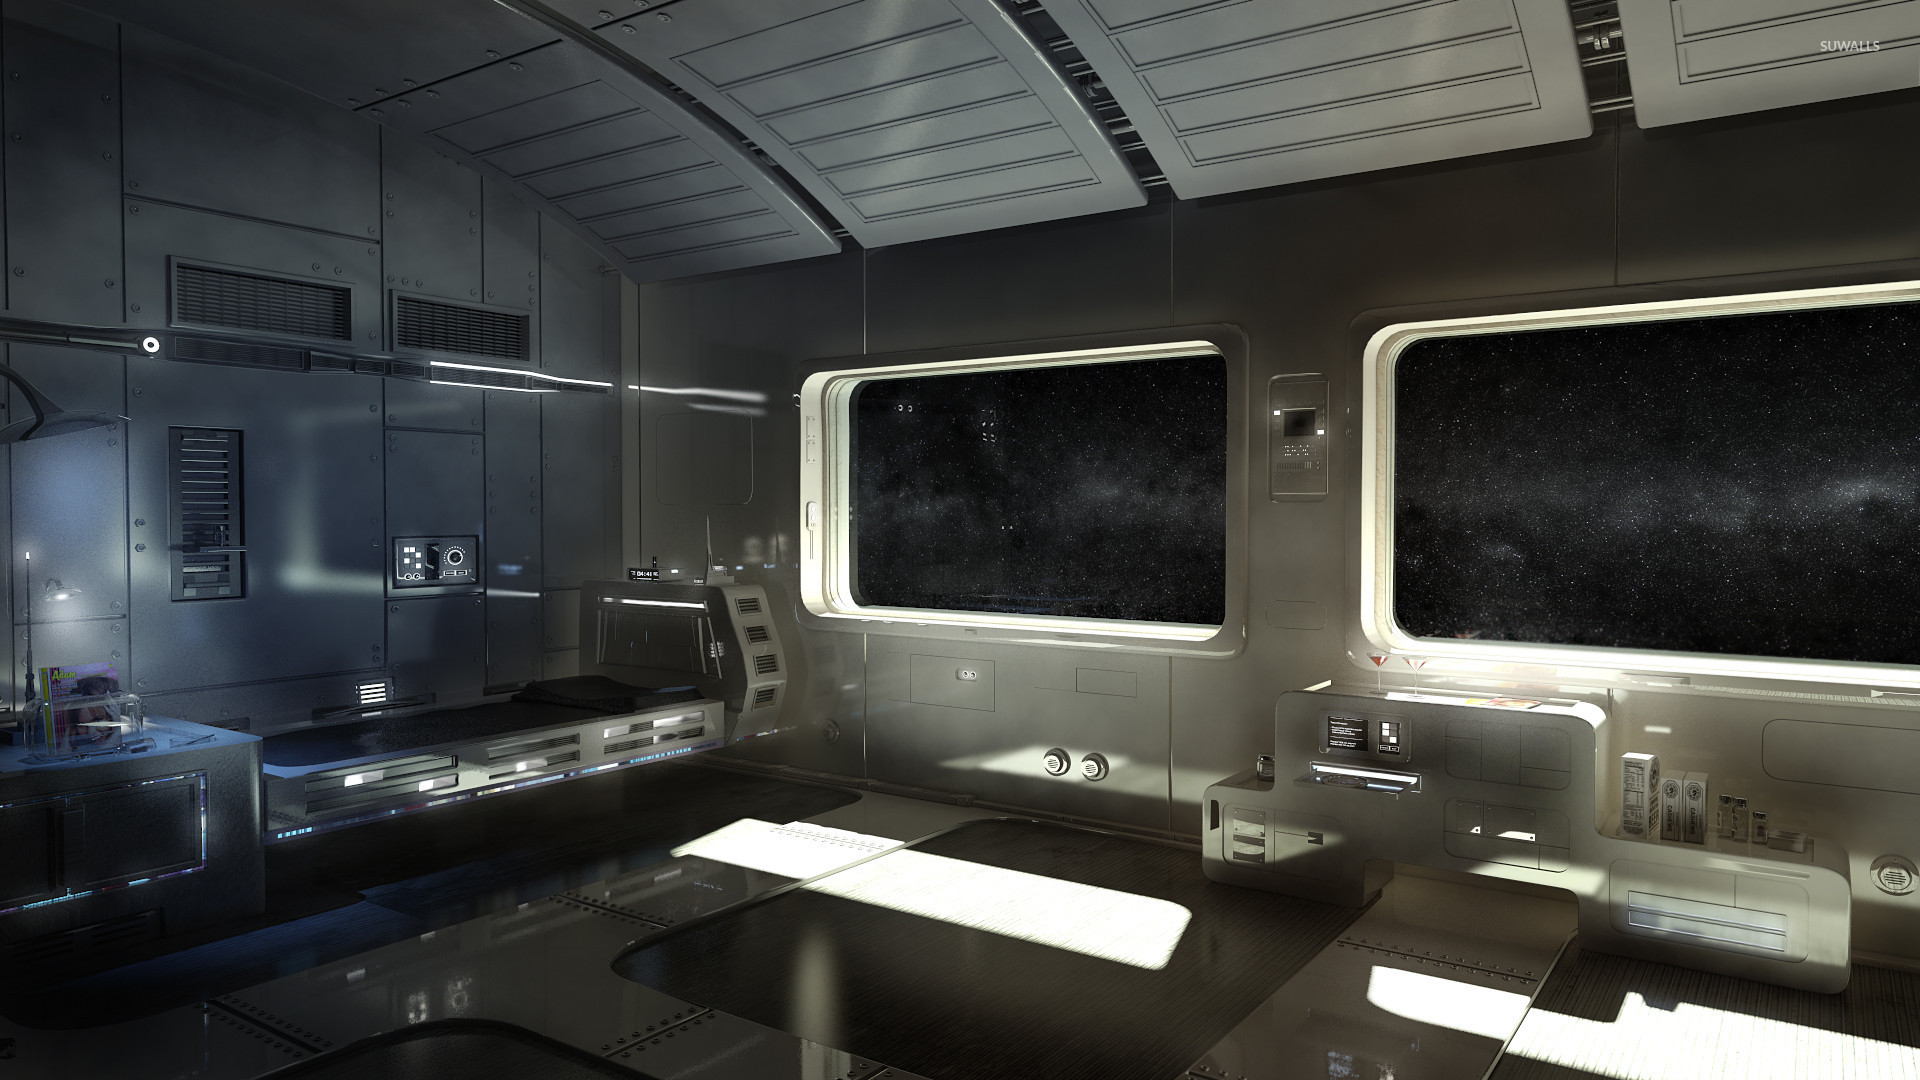 Spaceship interior wallpaper - Fantasy wallpapers - #29480